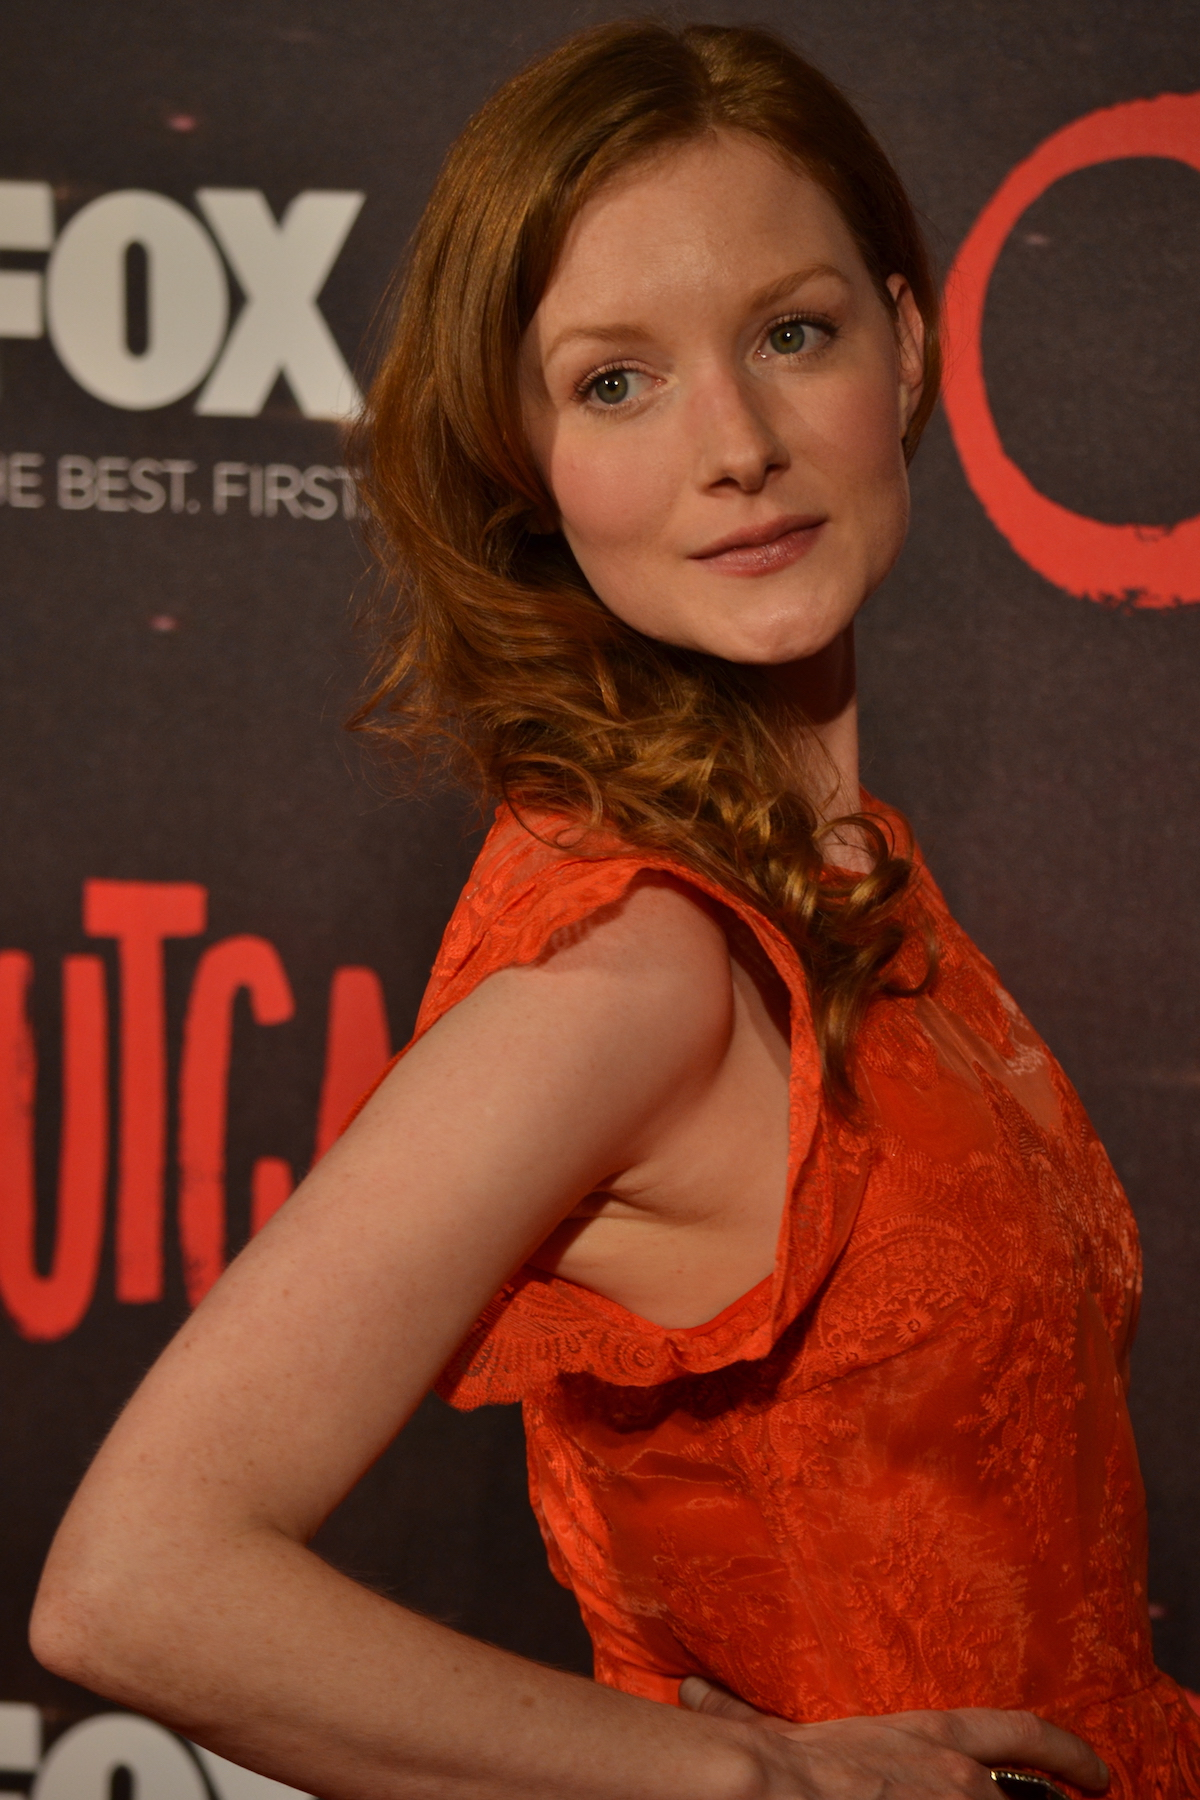 Outcast: Wrenn Schmidt sul red carpet della premiere europea